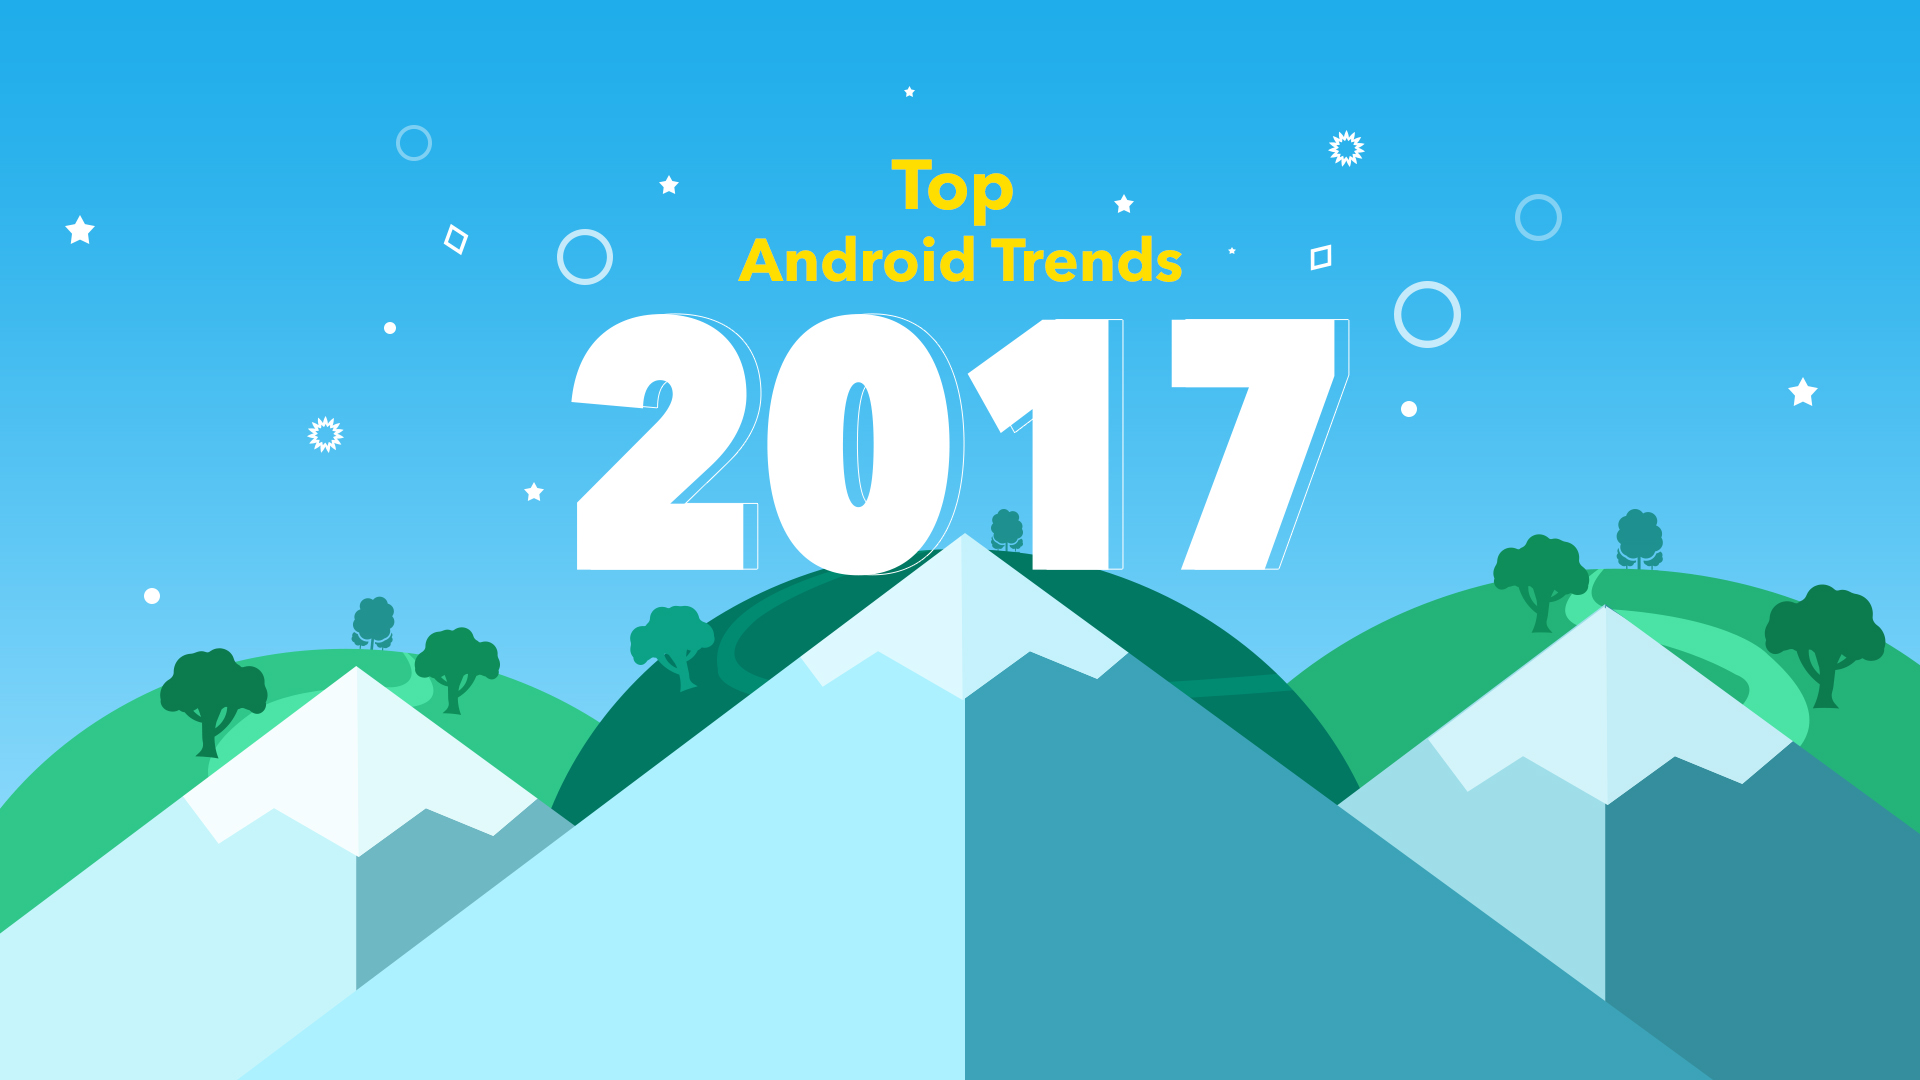 Top Android trends in 2017: List